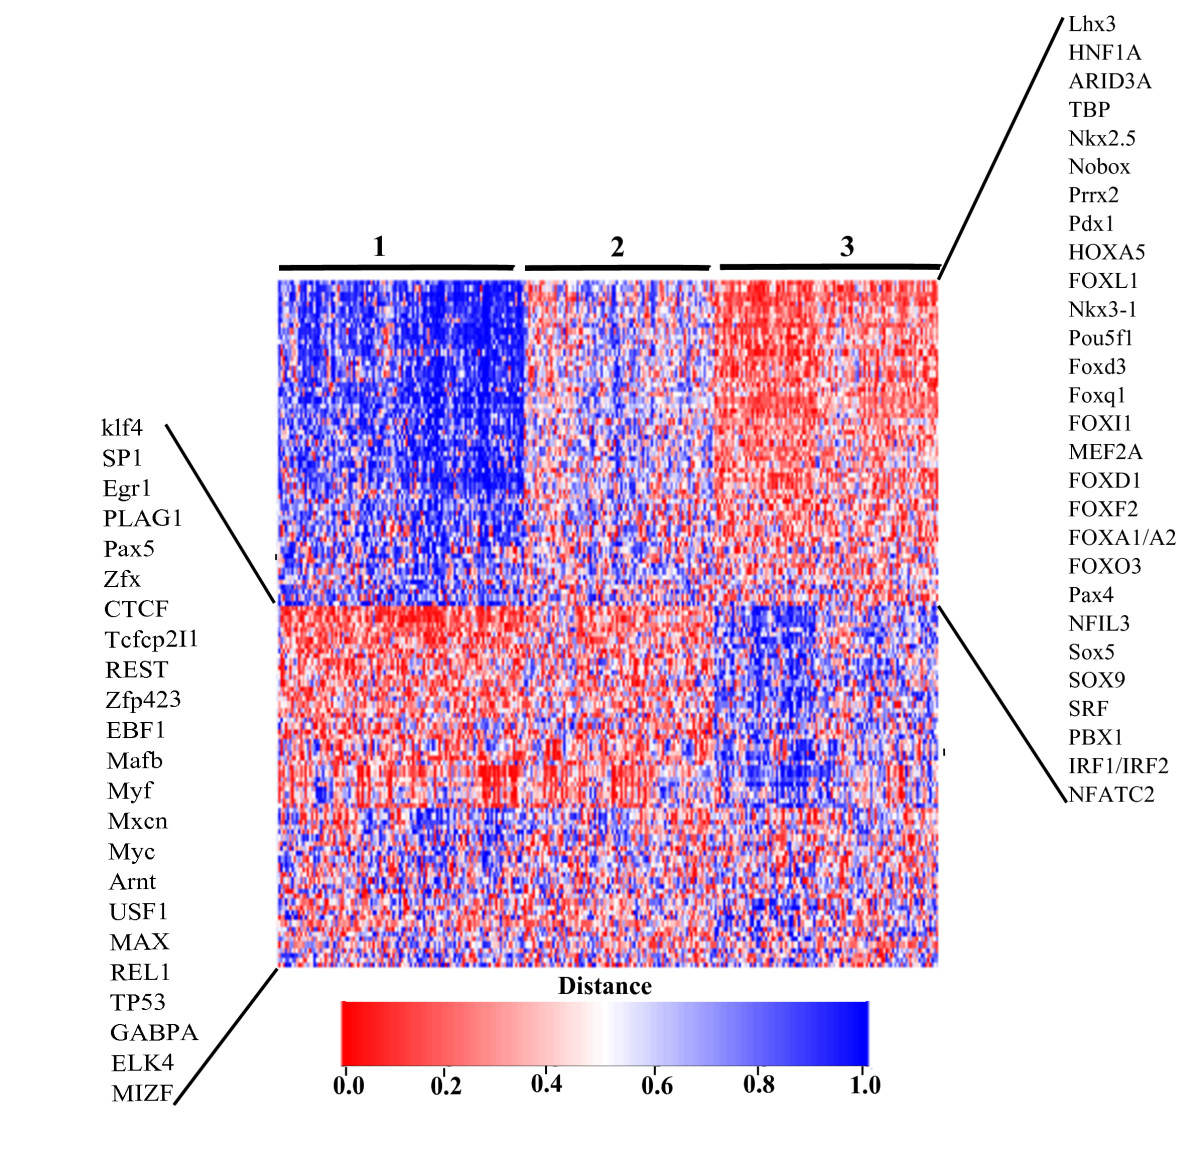 https://static-content.springer.com/image/art%3A10.1186%2Fgb-2013-14-8-r84/MediaObjects/13059_2013_Article_3166_Fig7_HTML.jpg